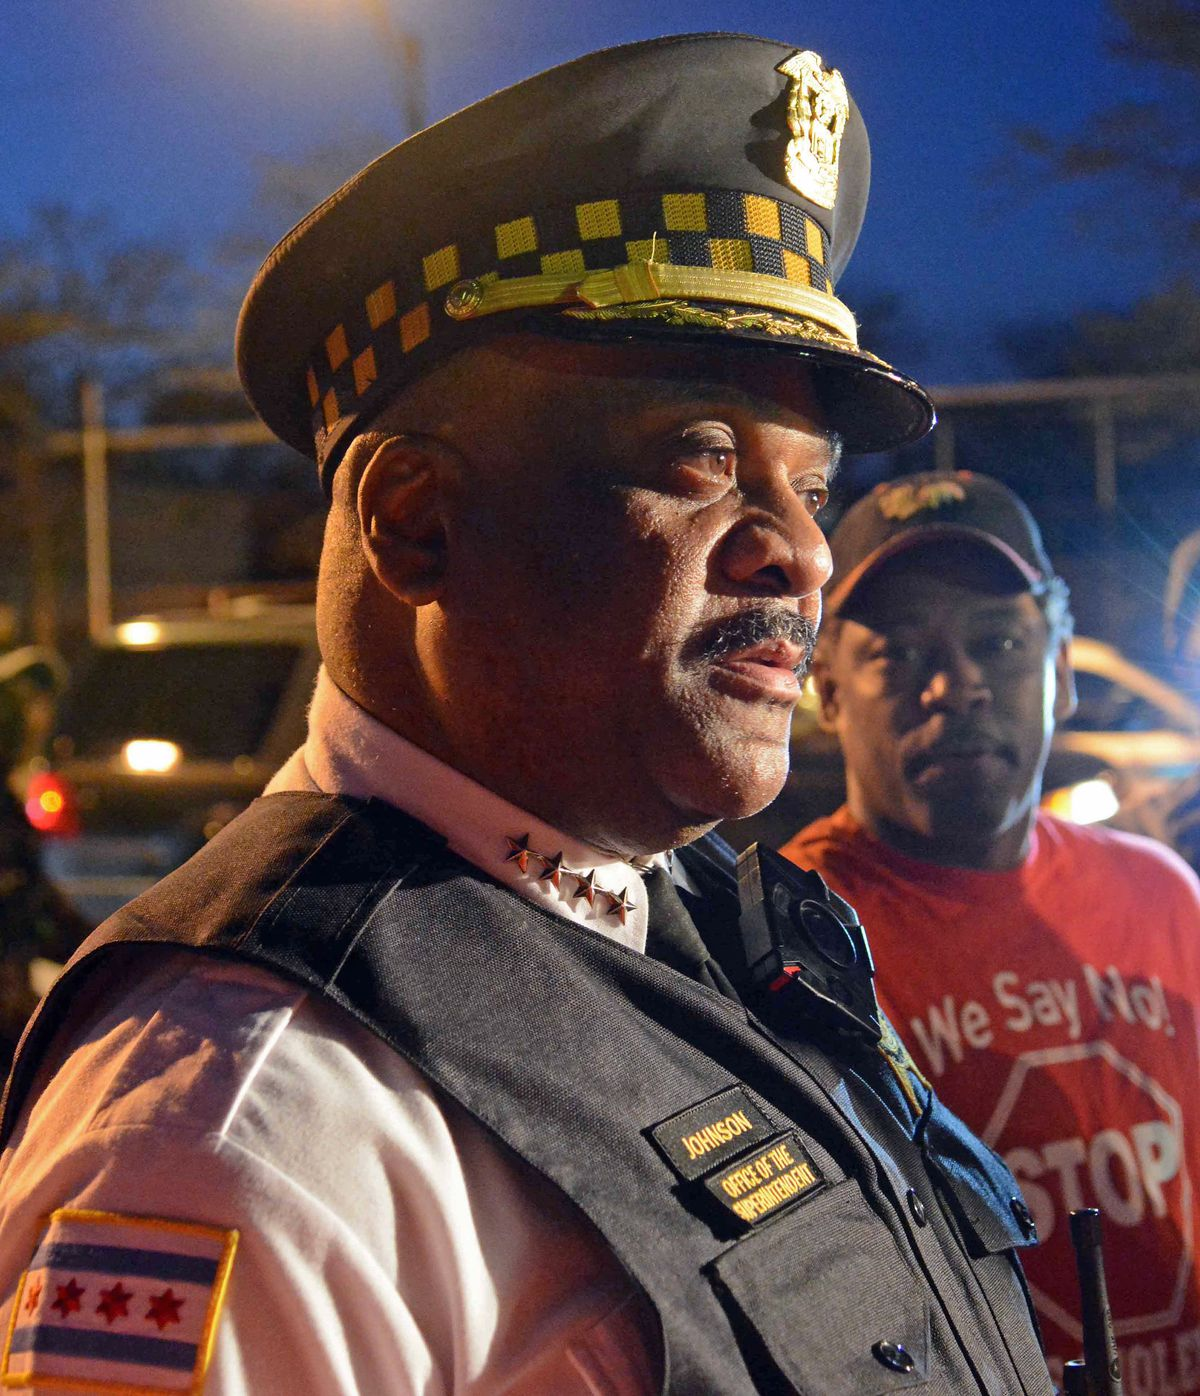 Supt. Eddie Johnson and First Deputy John Escalante meet with the media before going out on patrol wearing body cameras. | Brian Jackson/For the Sun-Times